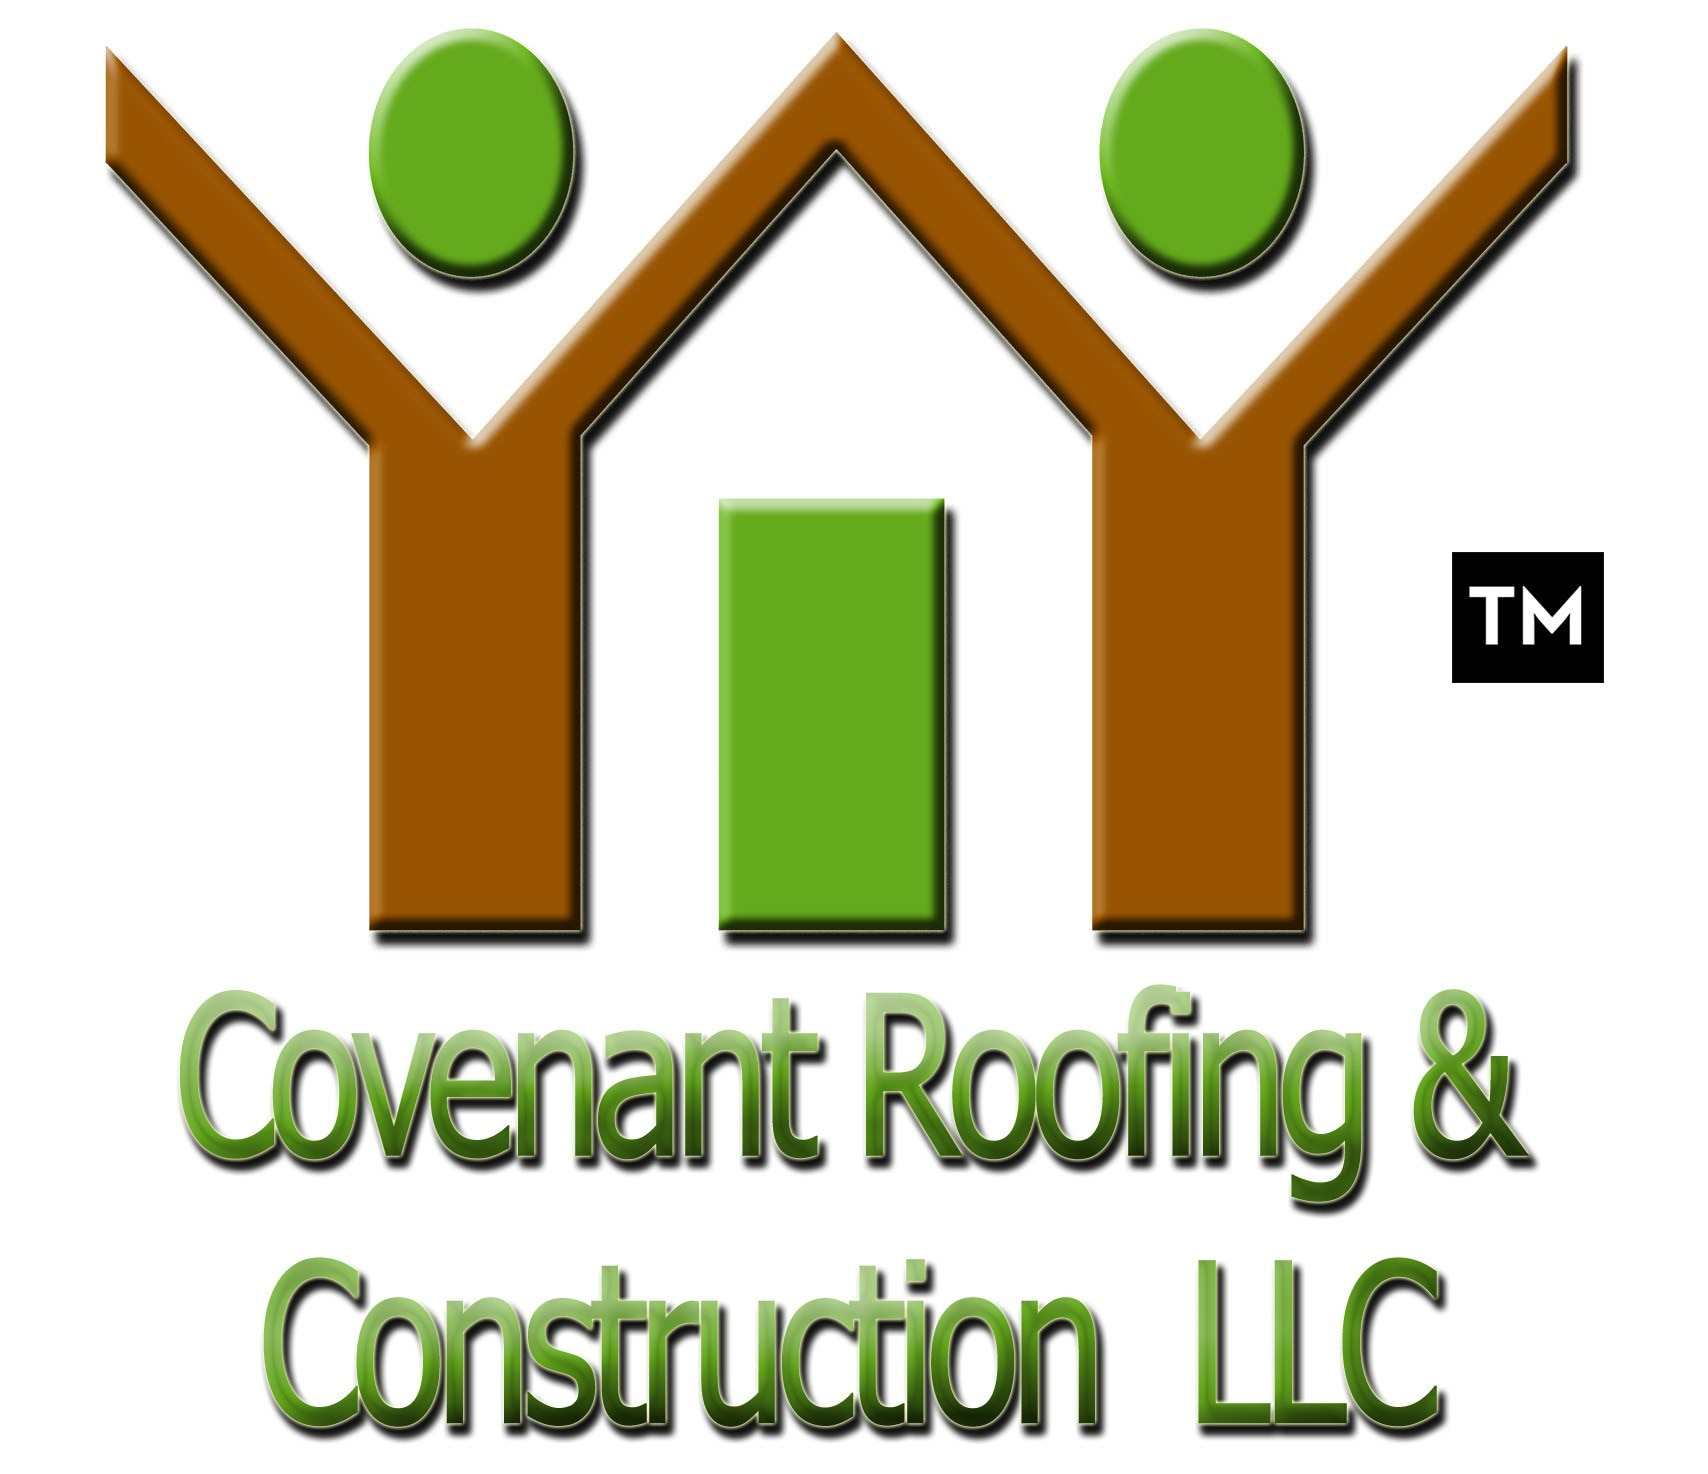 Covenant Roofing and Construction, LLC logo